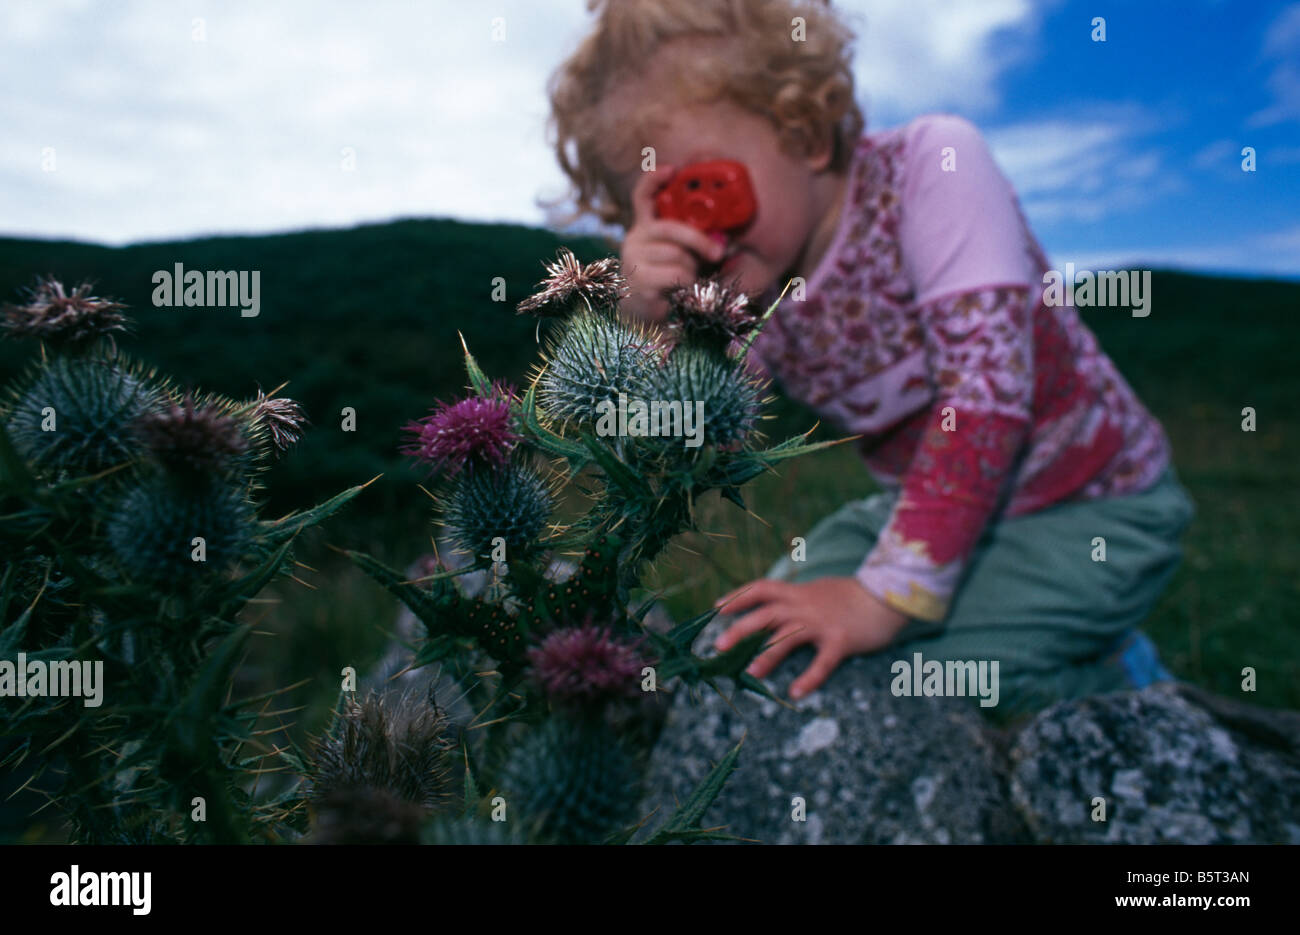 Young girl looking at an Emperor moth caterpillar (Saturnia pavonia) with toy camera, Grimsay, Outer Hebrides, Scotland, - Stock Image